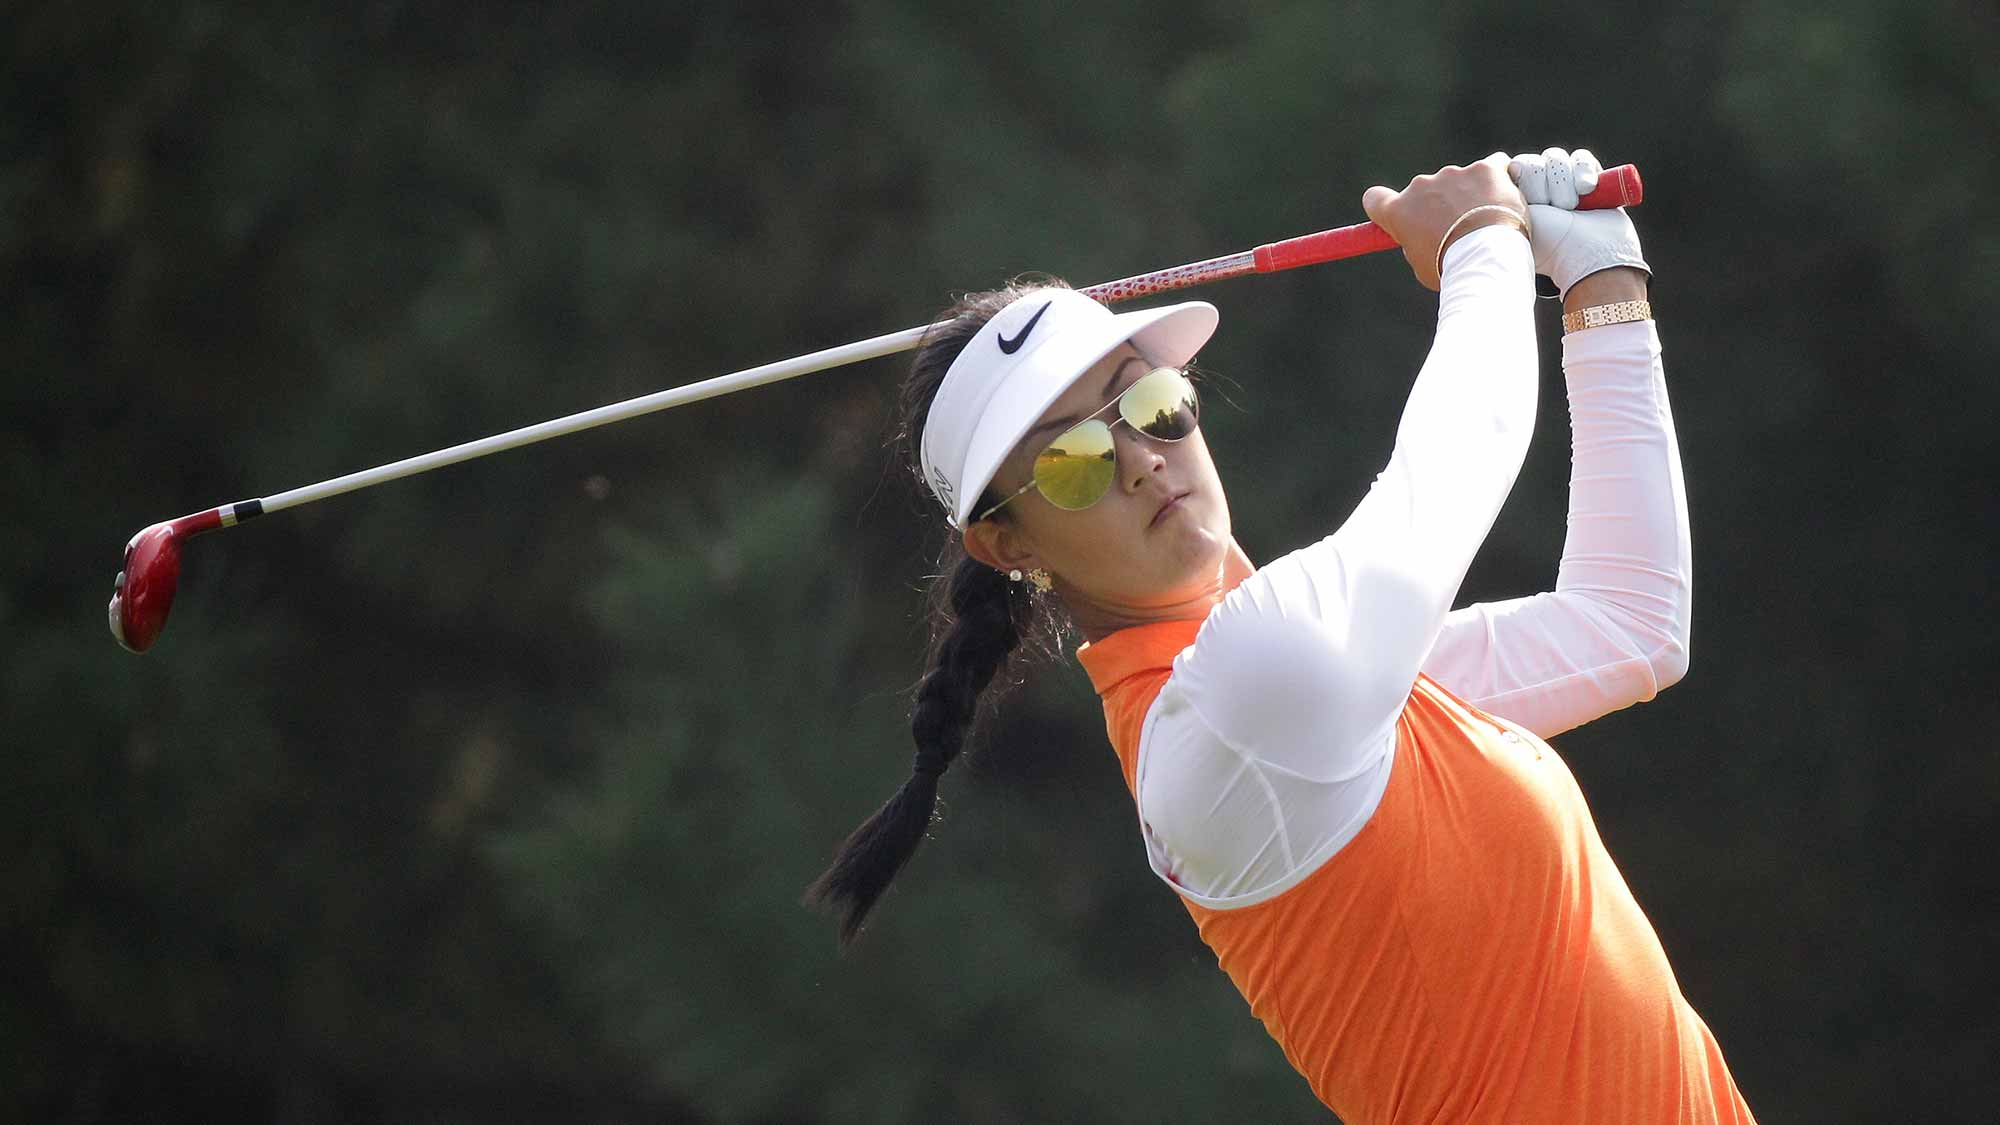 Michelle Wie of United States plays a tee shot on the 4th hole during round two of the LPGA KEB Hana Bank Championship